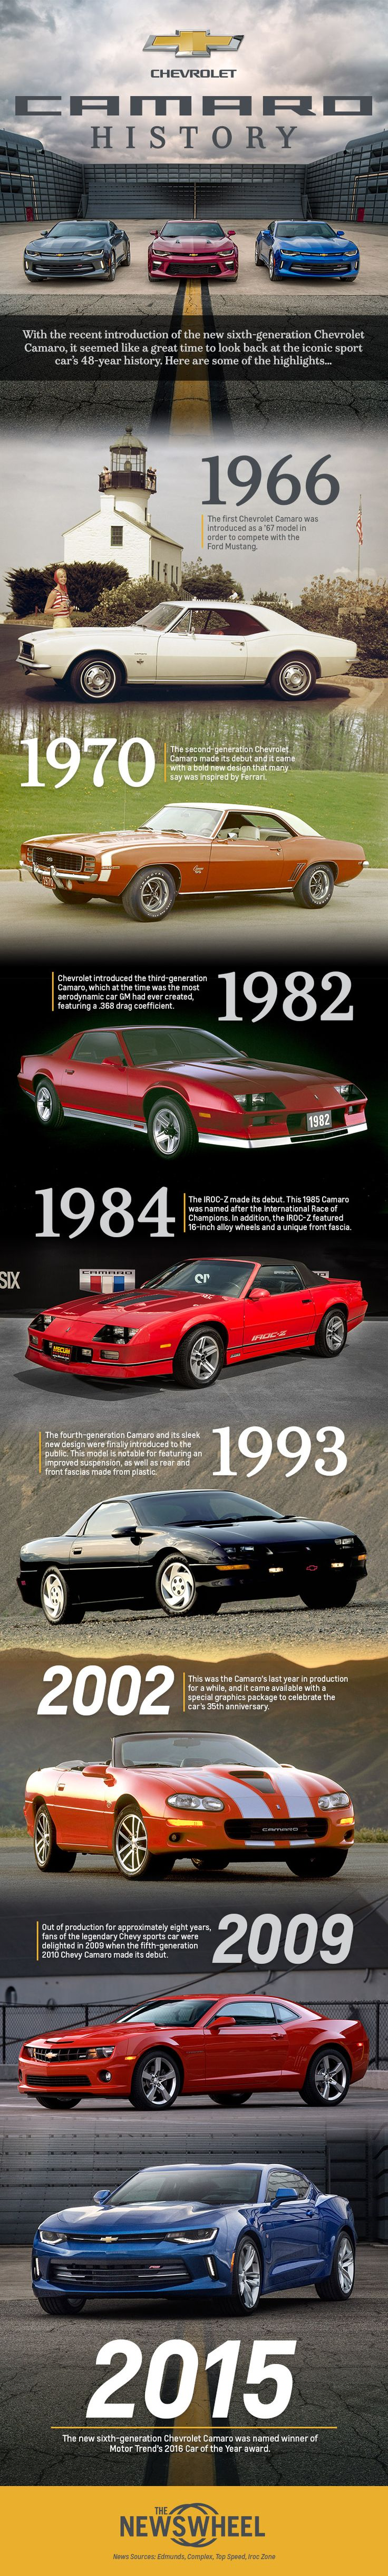 Take a visual tour of the #Chevrolet #Camaro's storied history | thenewswheel.com